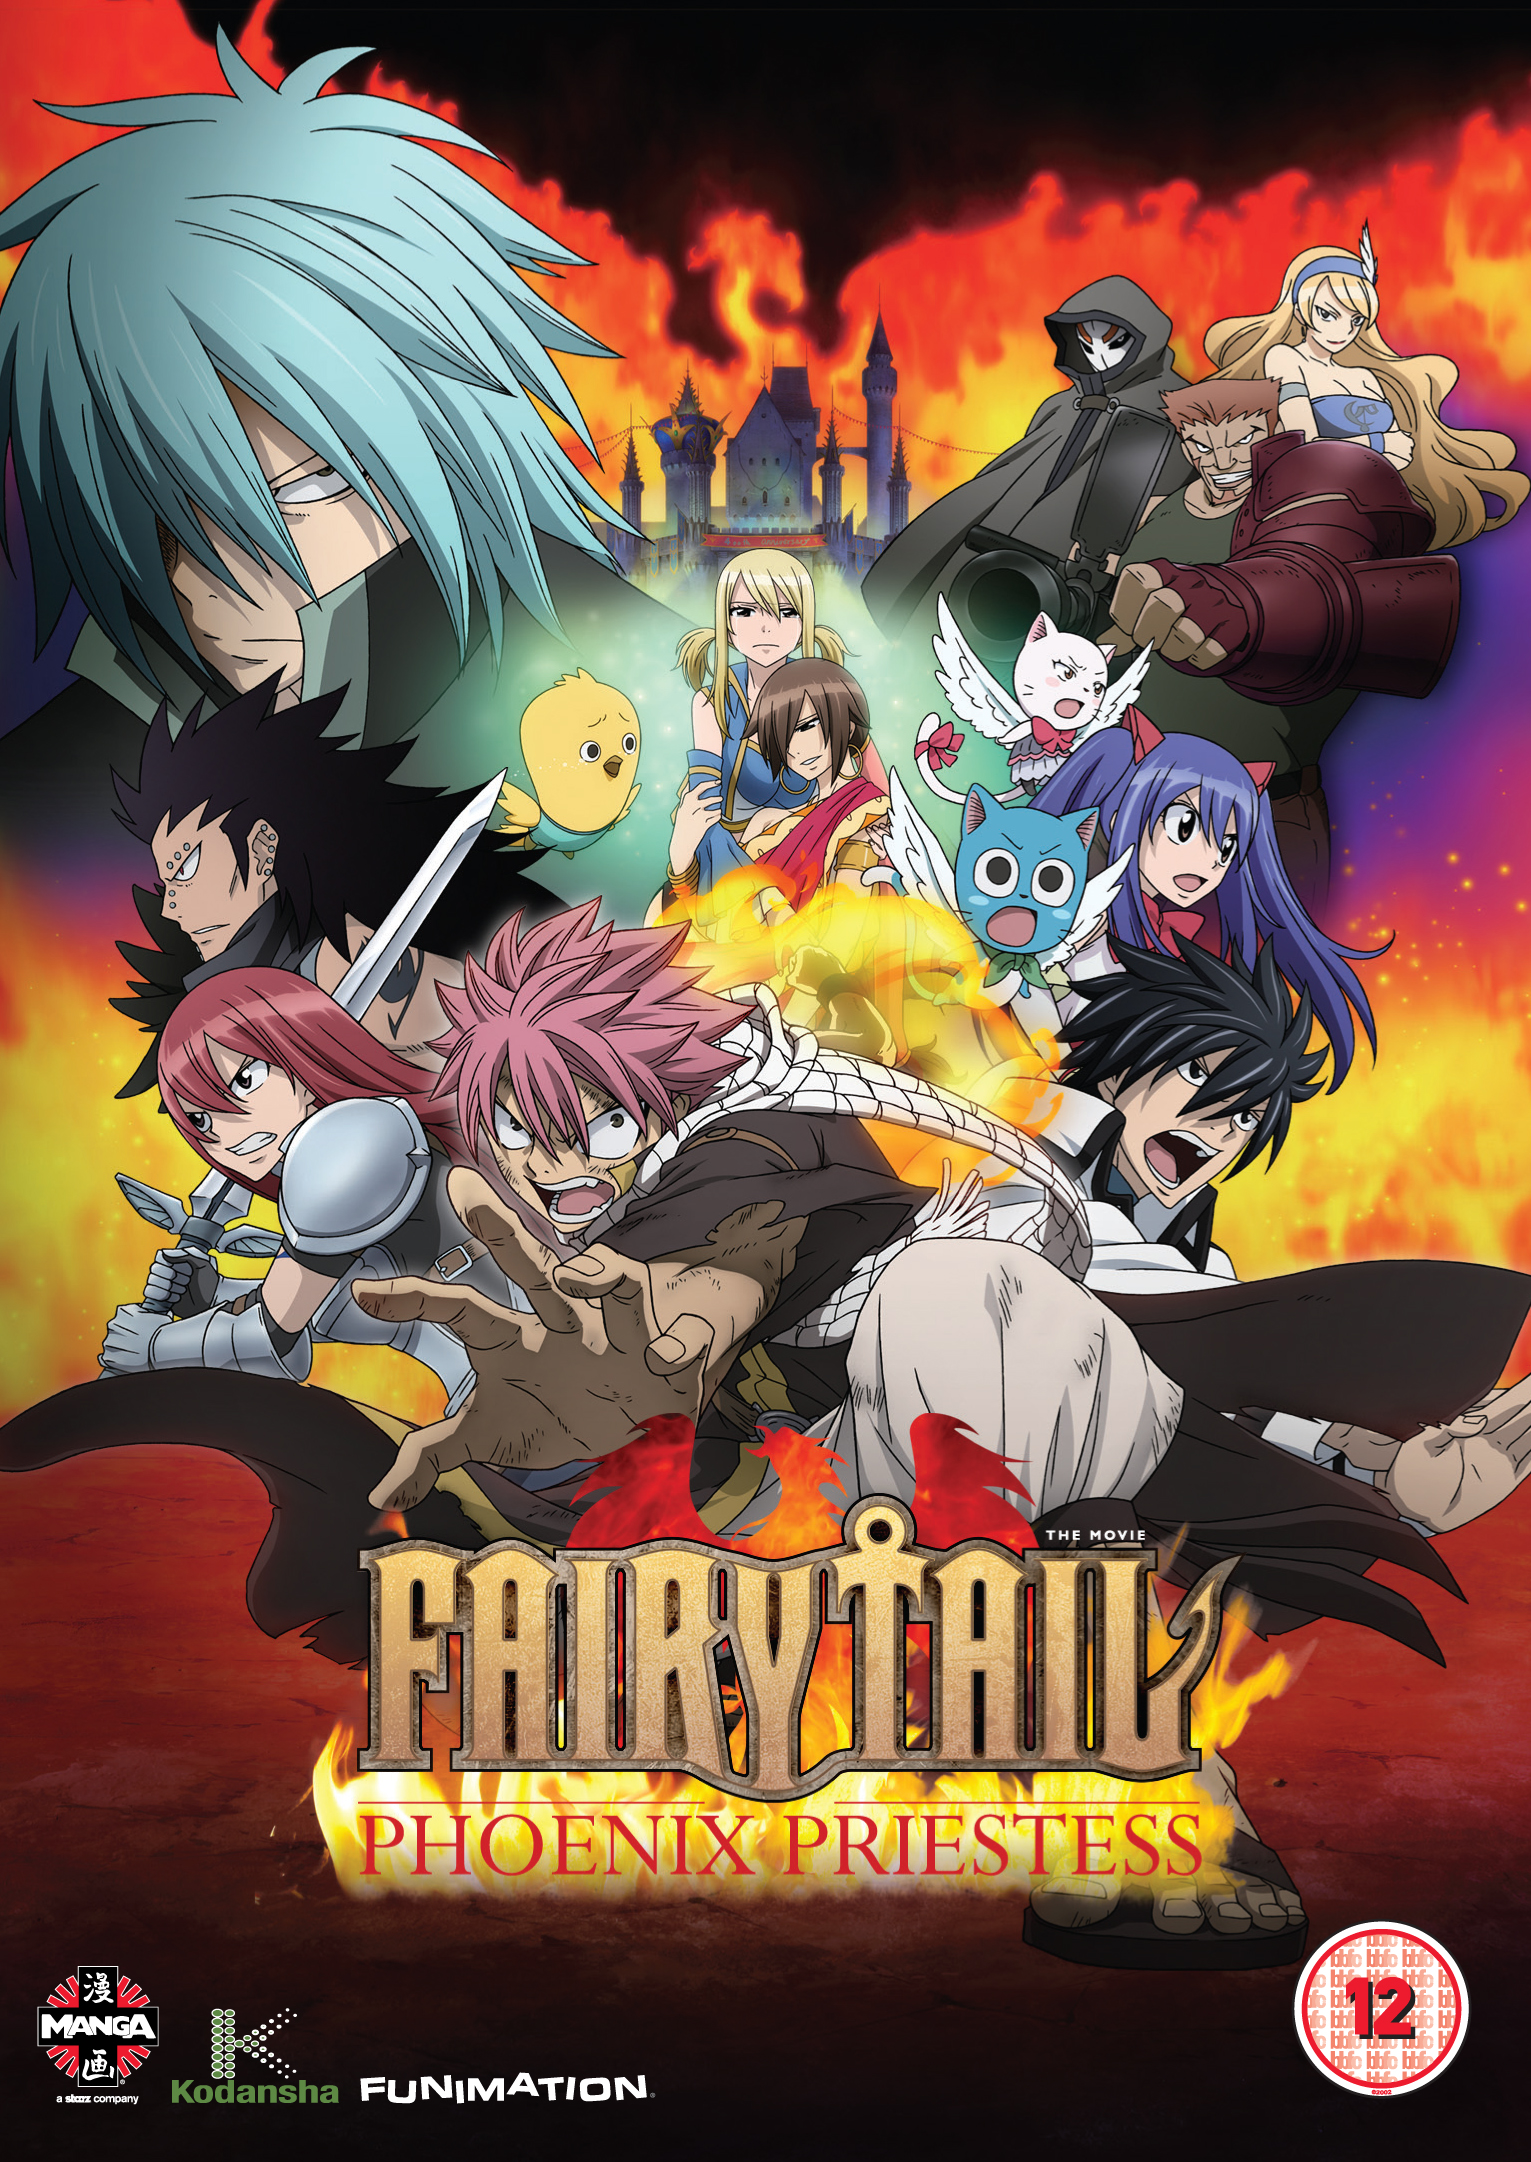 ... eternal life: A review of Fairy Tail the Movie – Phoenix Priestess